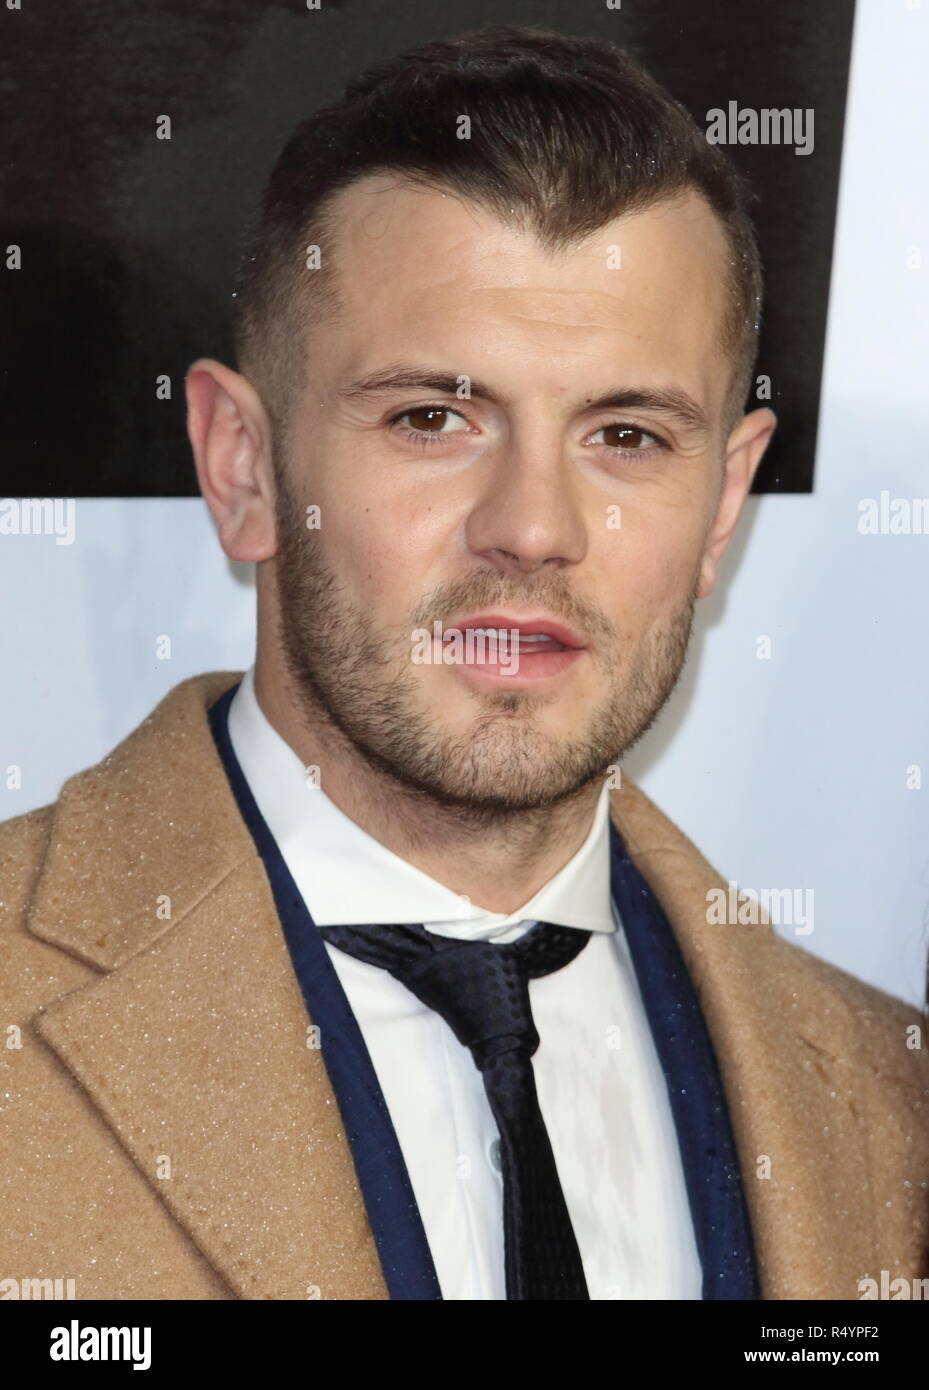 London, London, UK. 28th Nov, 2018. Jack Wilshere at the Creed 2 UK Premiere at the BFI Imax. Credit: Keith Mayhew/SOPA Images/ZUMA Wire/Alamy Live News - Stock Image